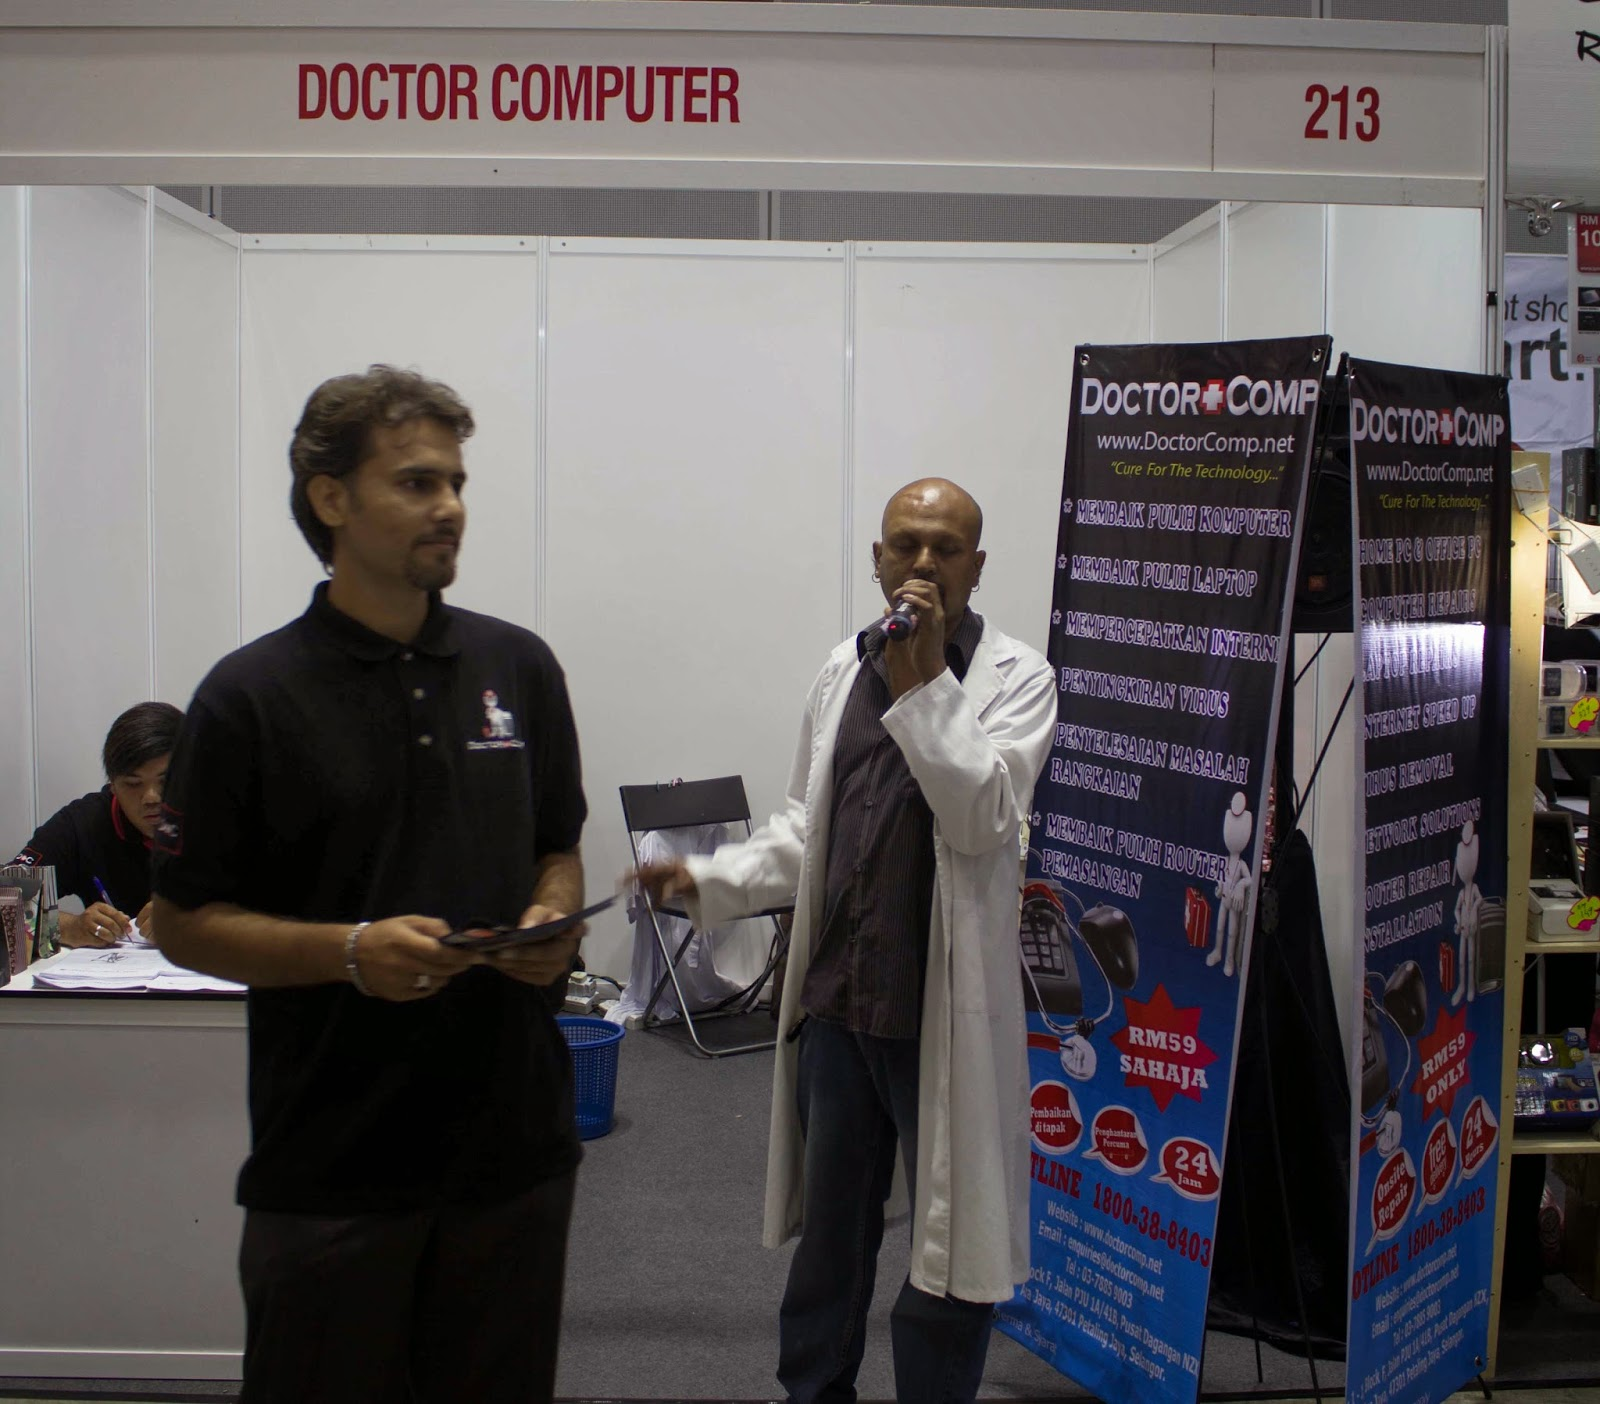 Coverage of PIKOM PC Fair 2014 @ Kuala Lumpur Convention Center 320